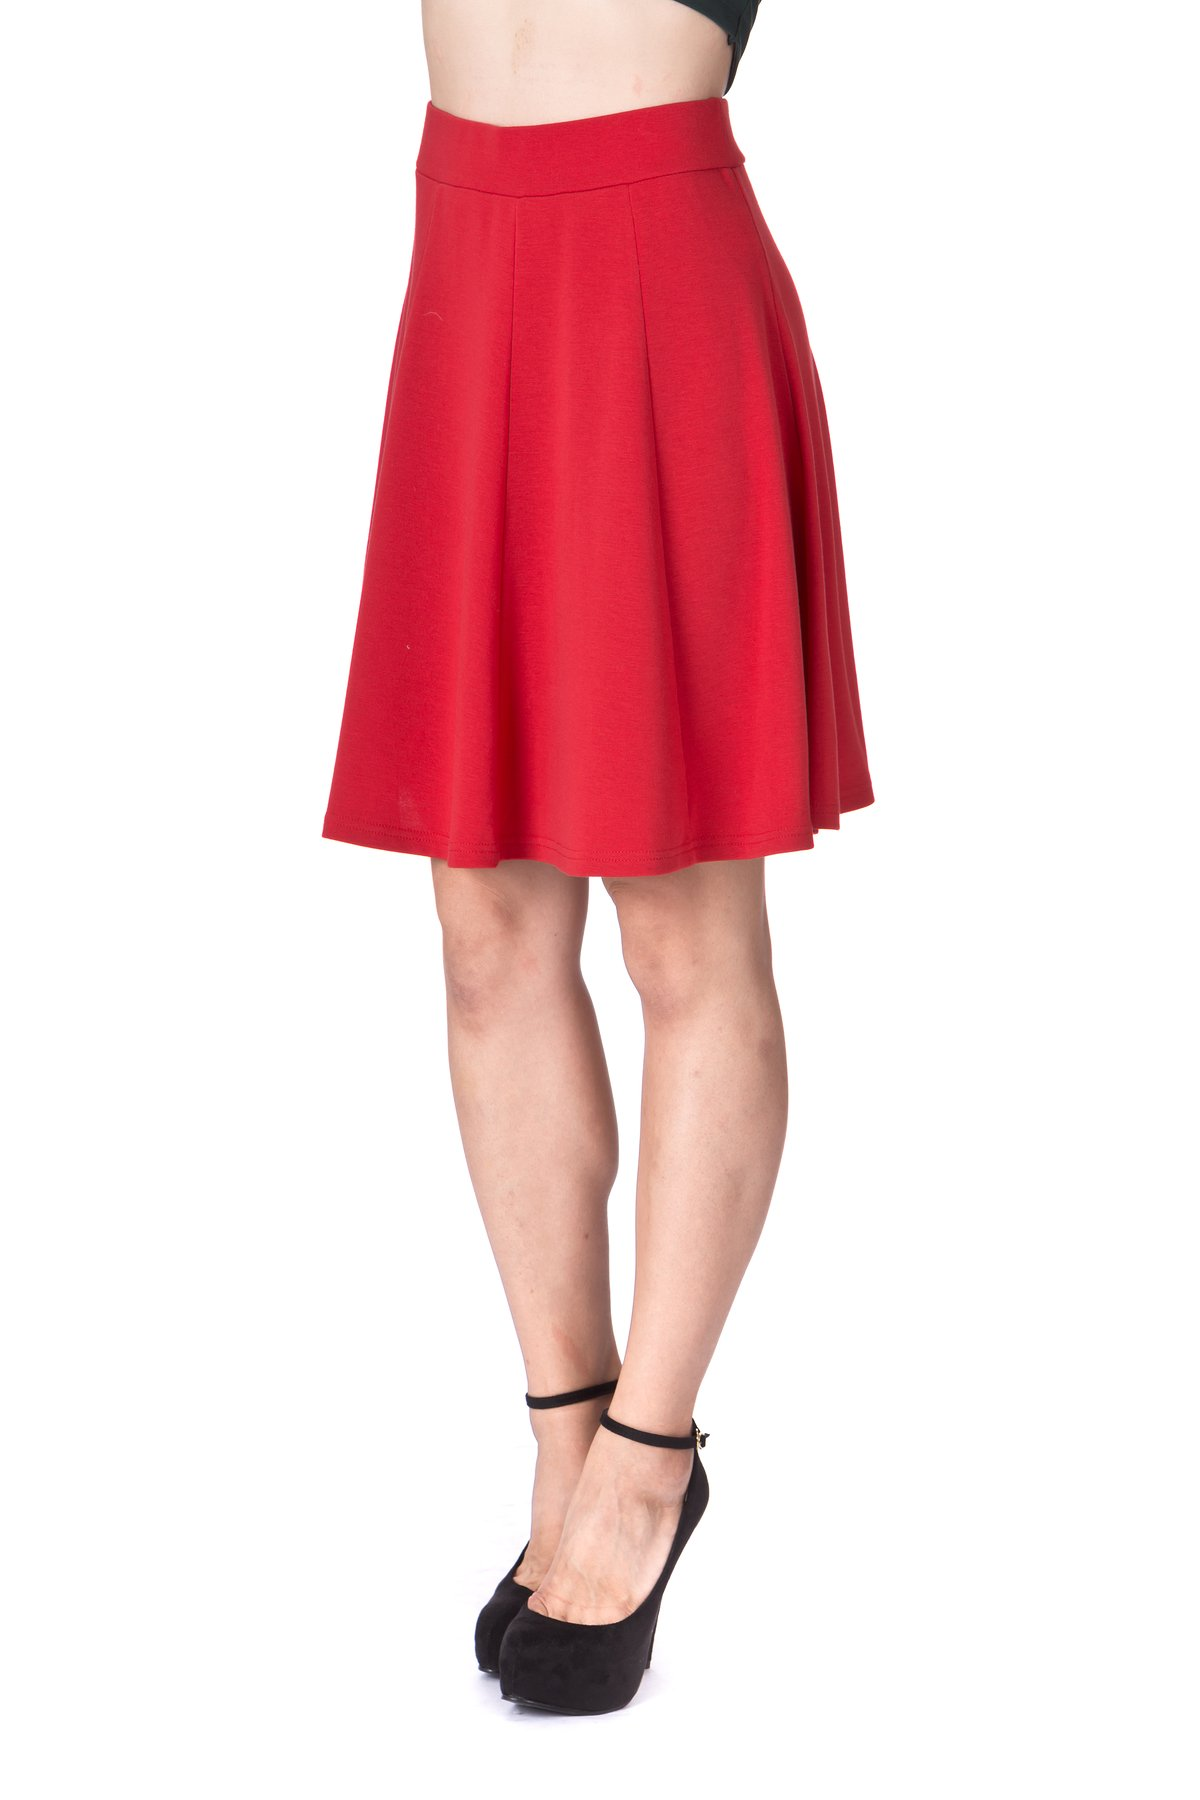 Casual to Formal Stretch Gored Flared Trumpet Mermaid Knee Length Skirt Red 6